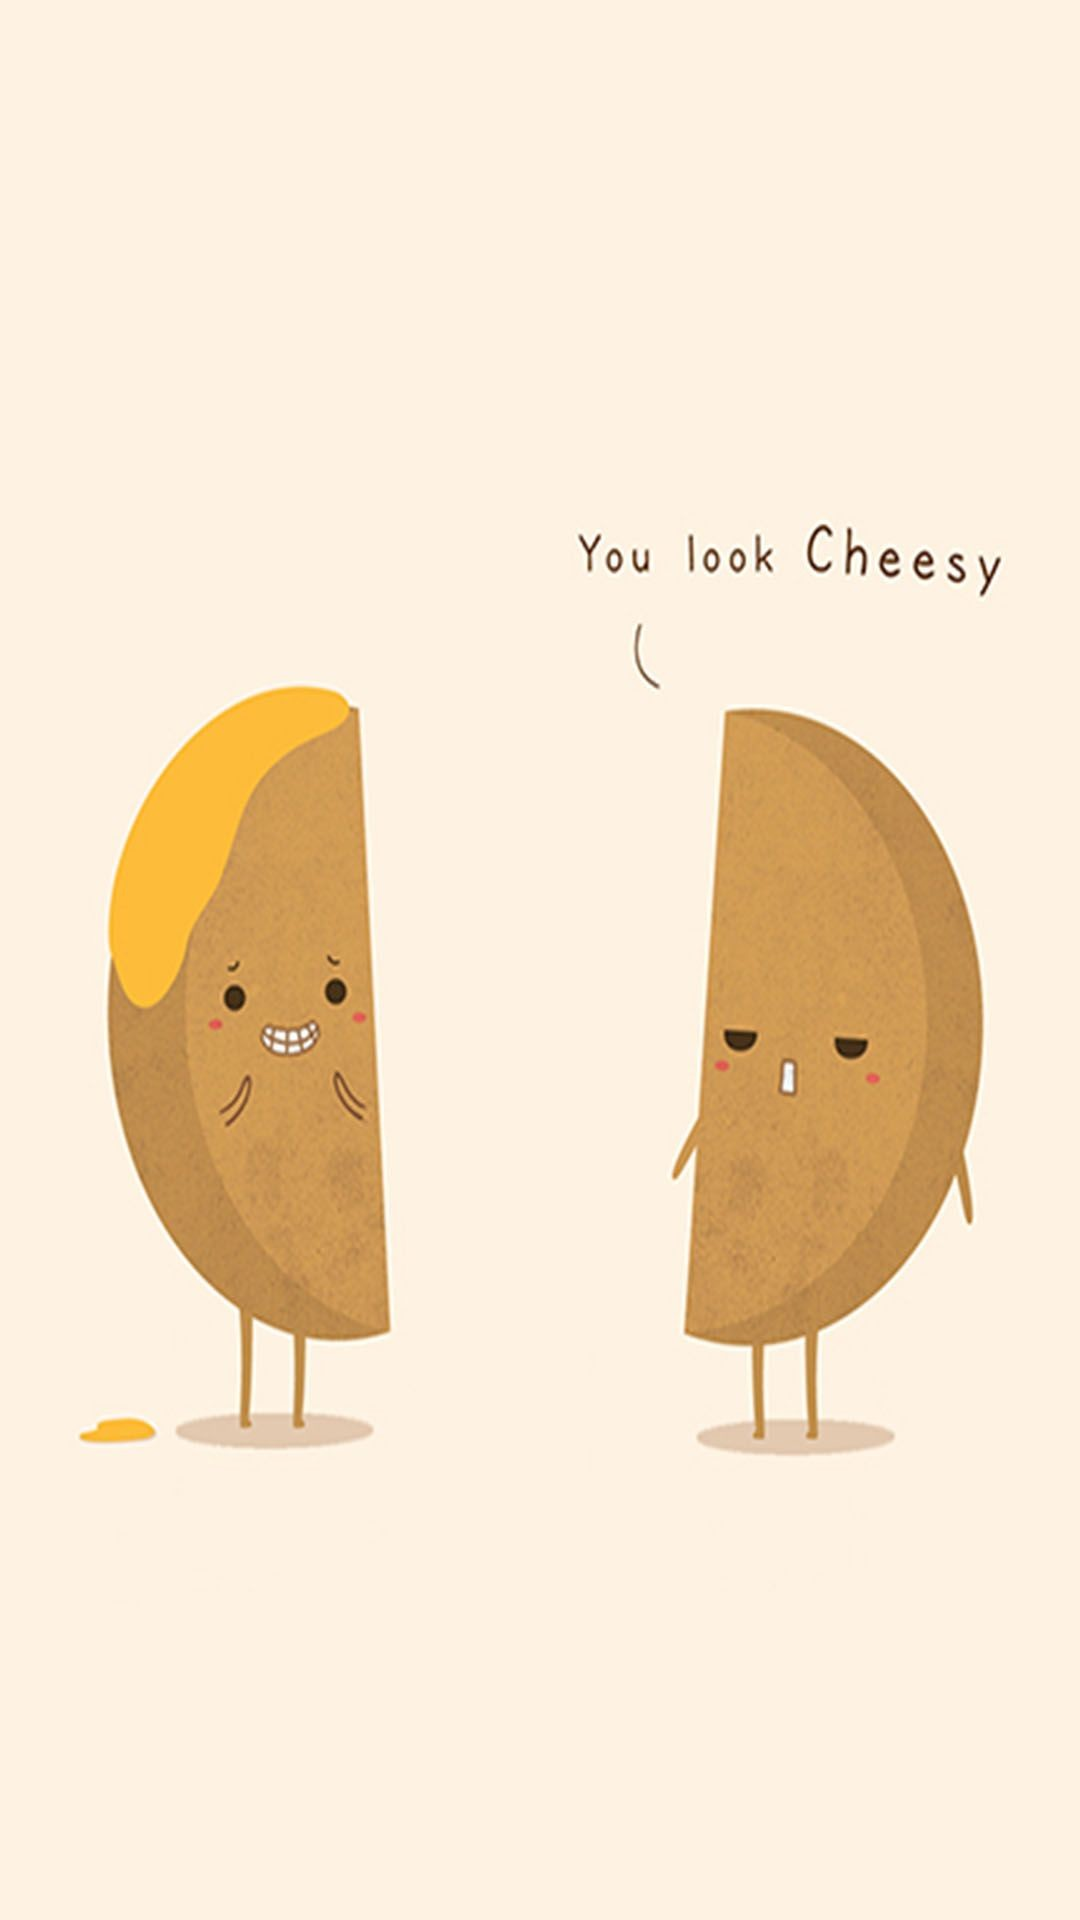 Res: 1080x1920, Tap image for more cute funny iPhone wallpaper! You look cheesy - @mobile9 |